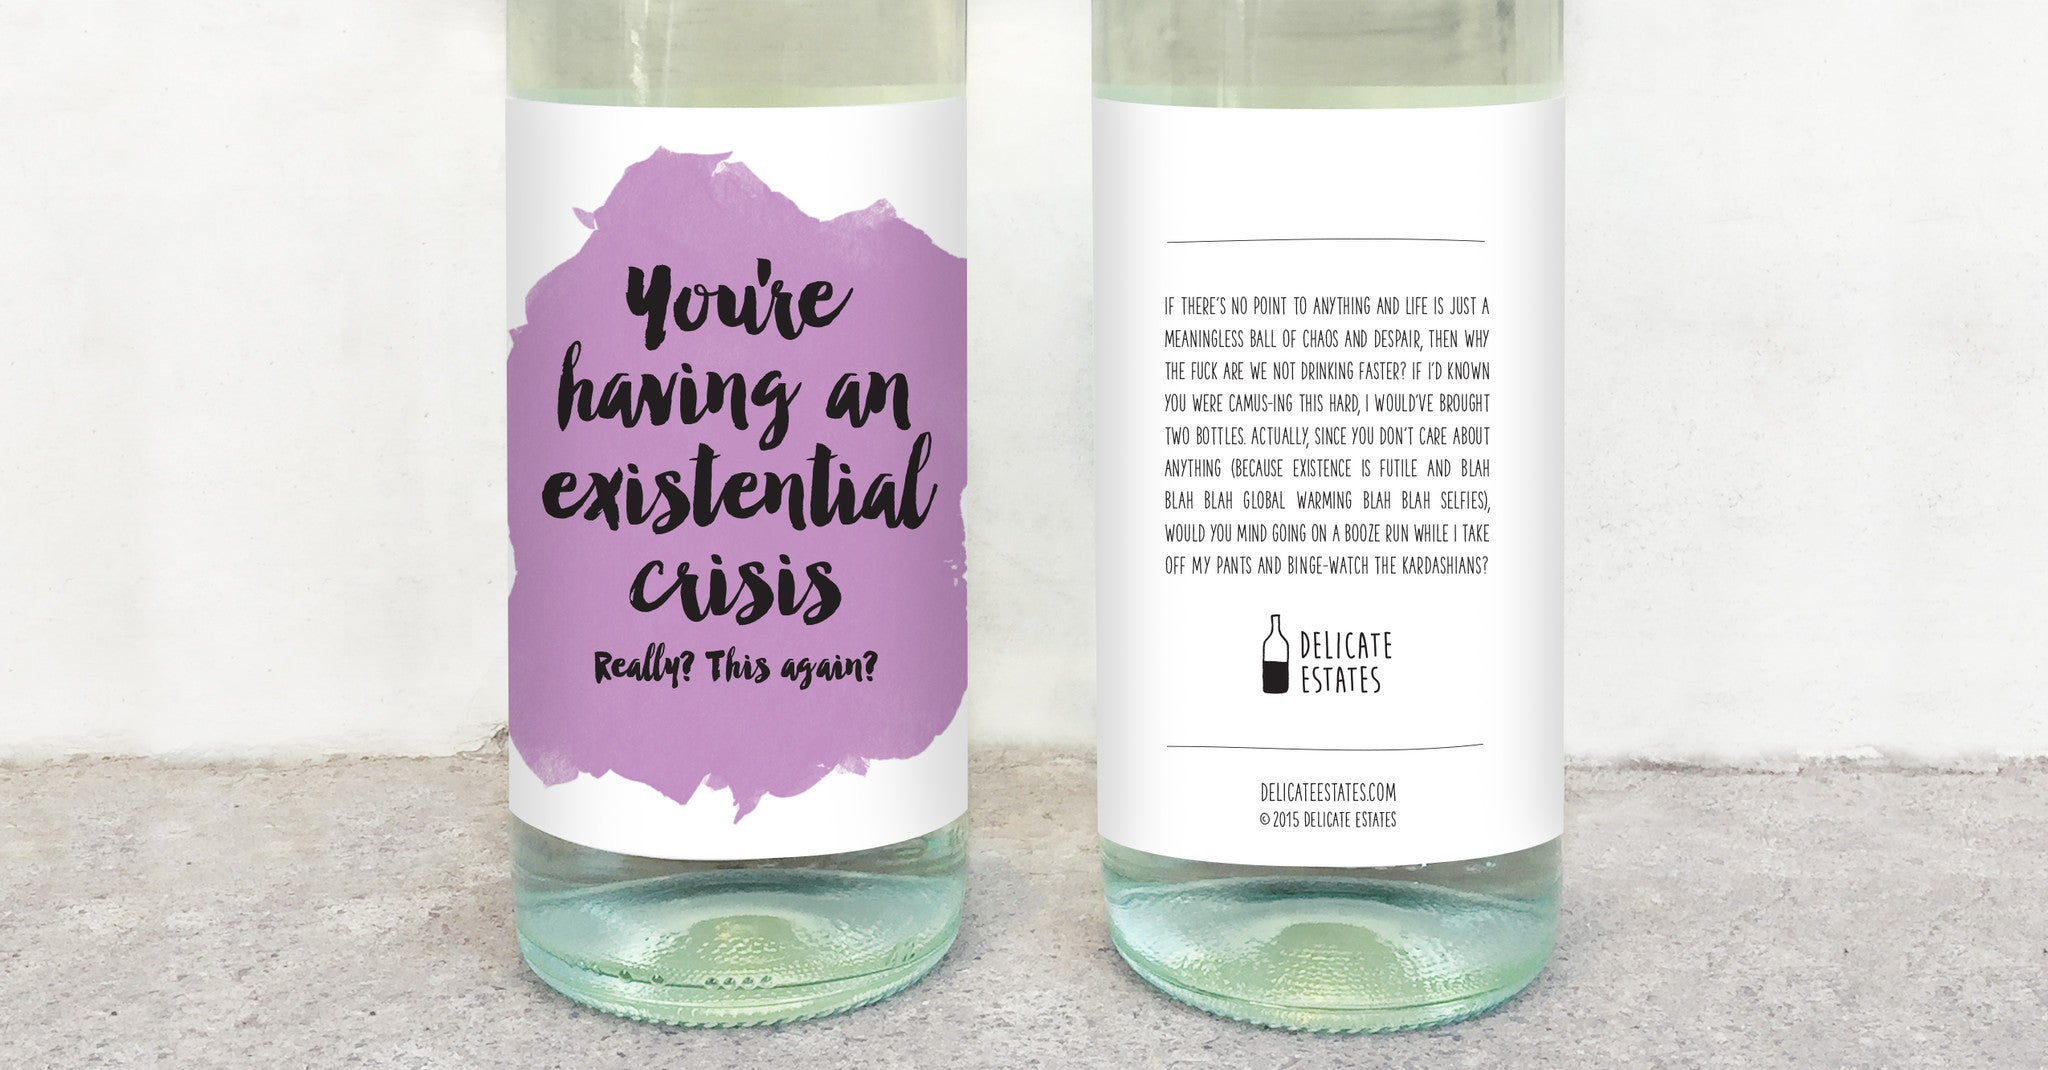 existential crisis wine label greeting card delicate estates really this again albert camus